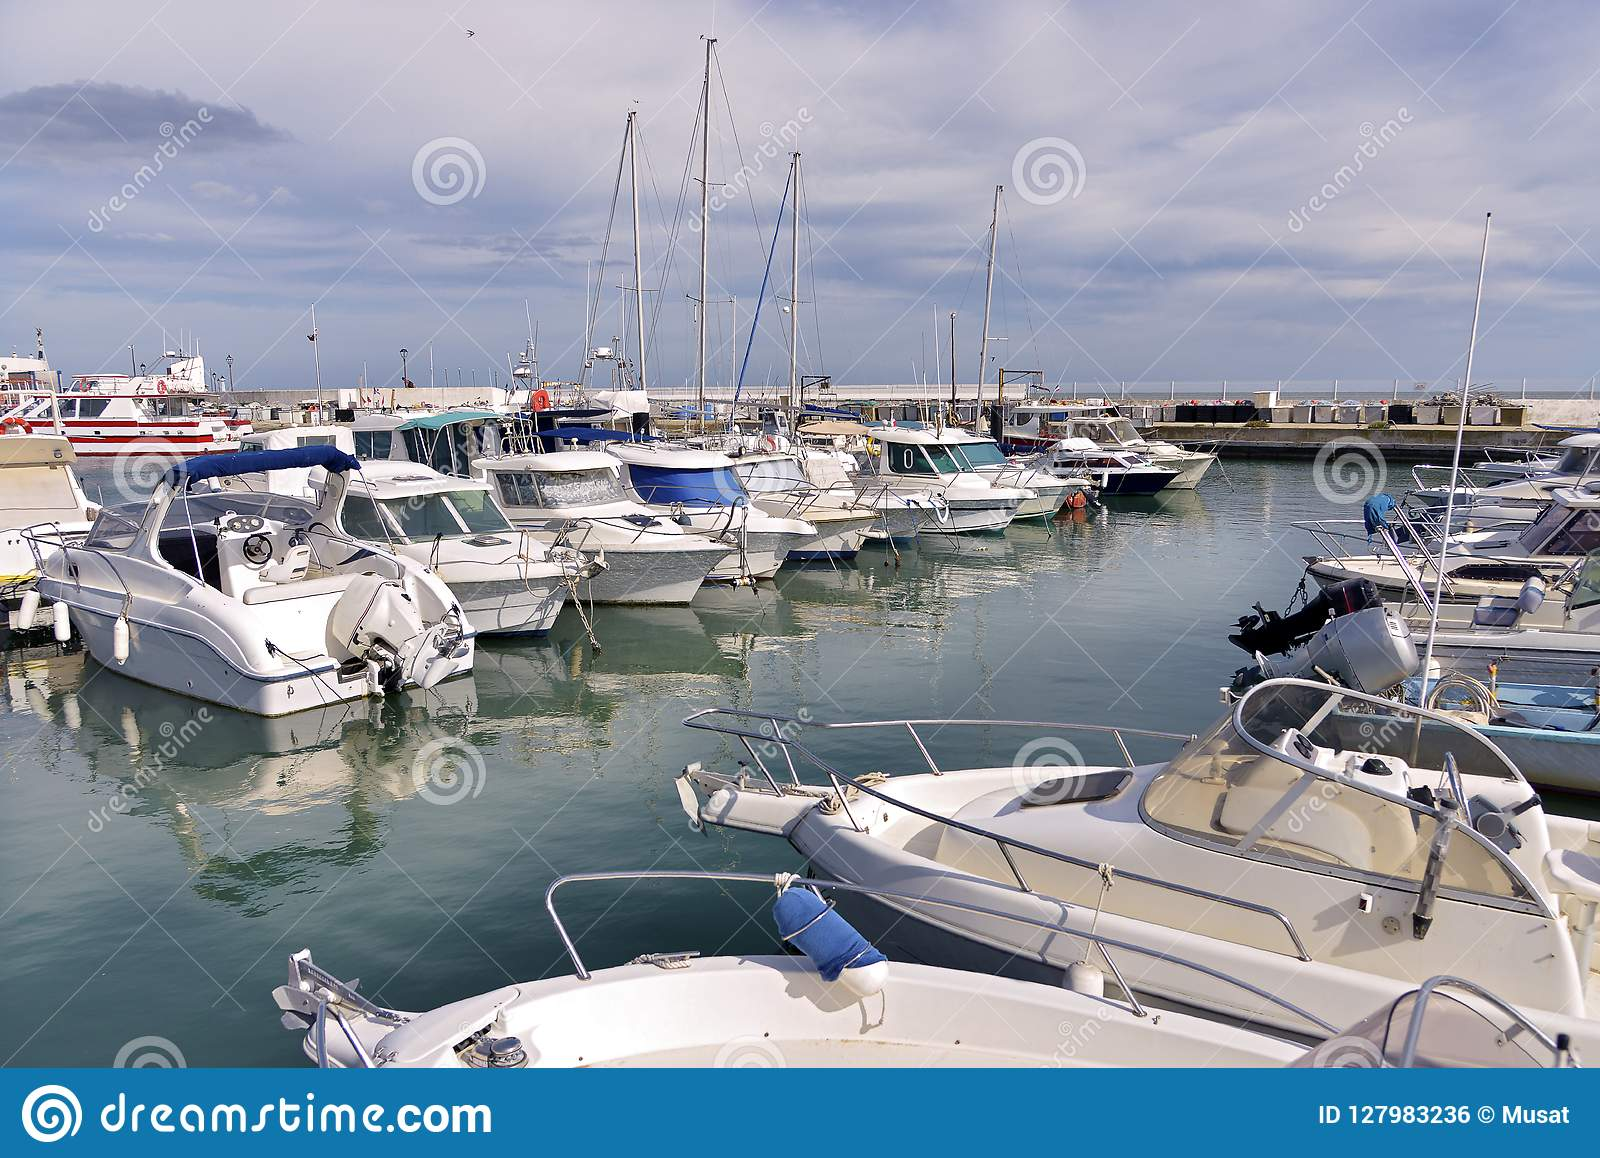 Port Of Saintes Maries De La Mer In France Stock Photo Image Of